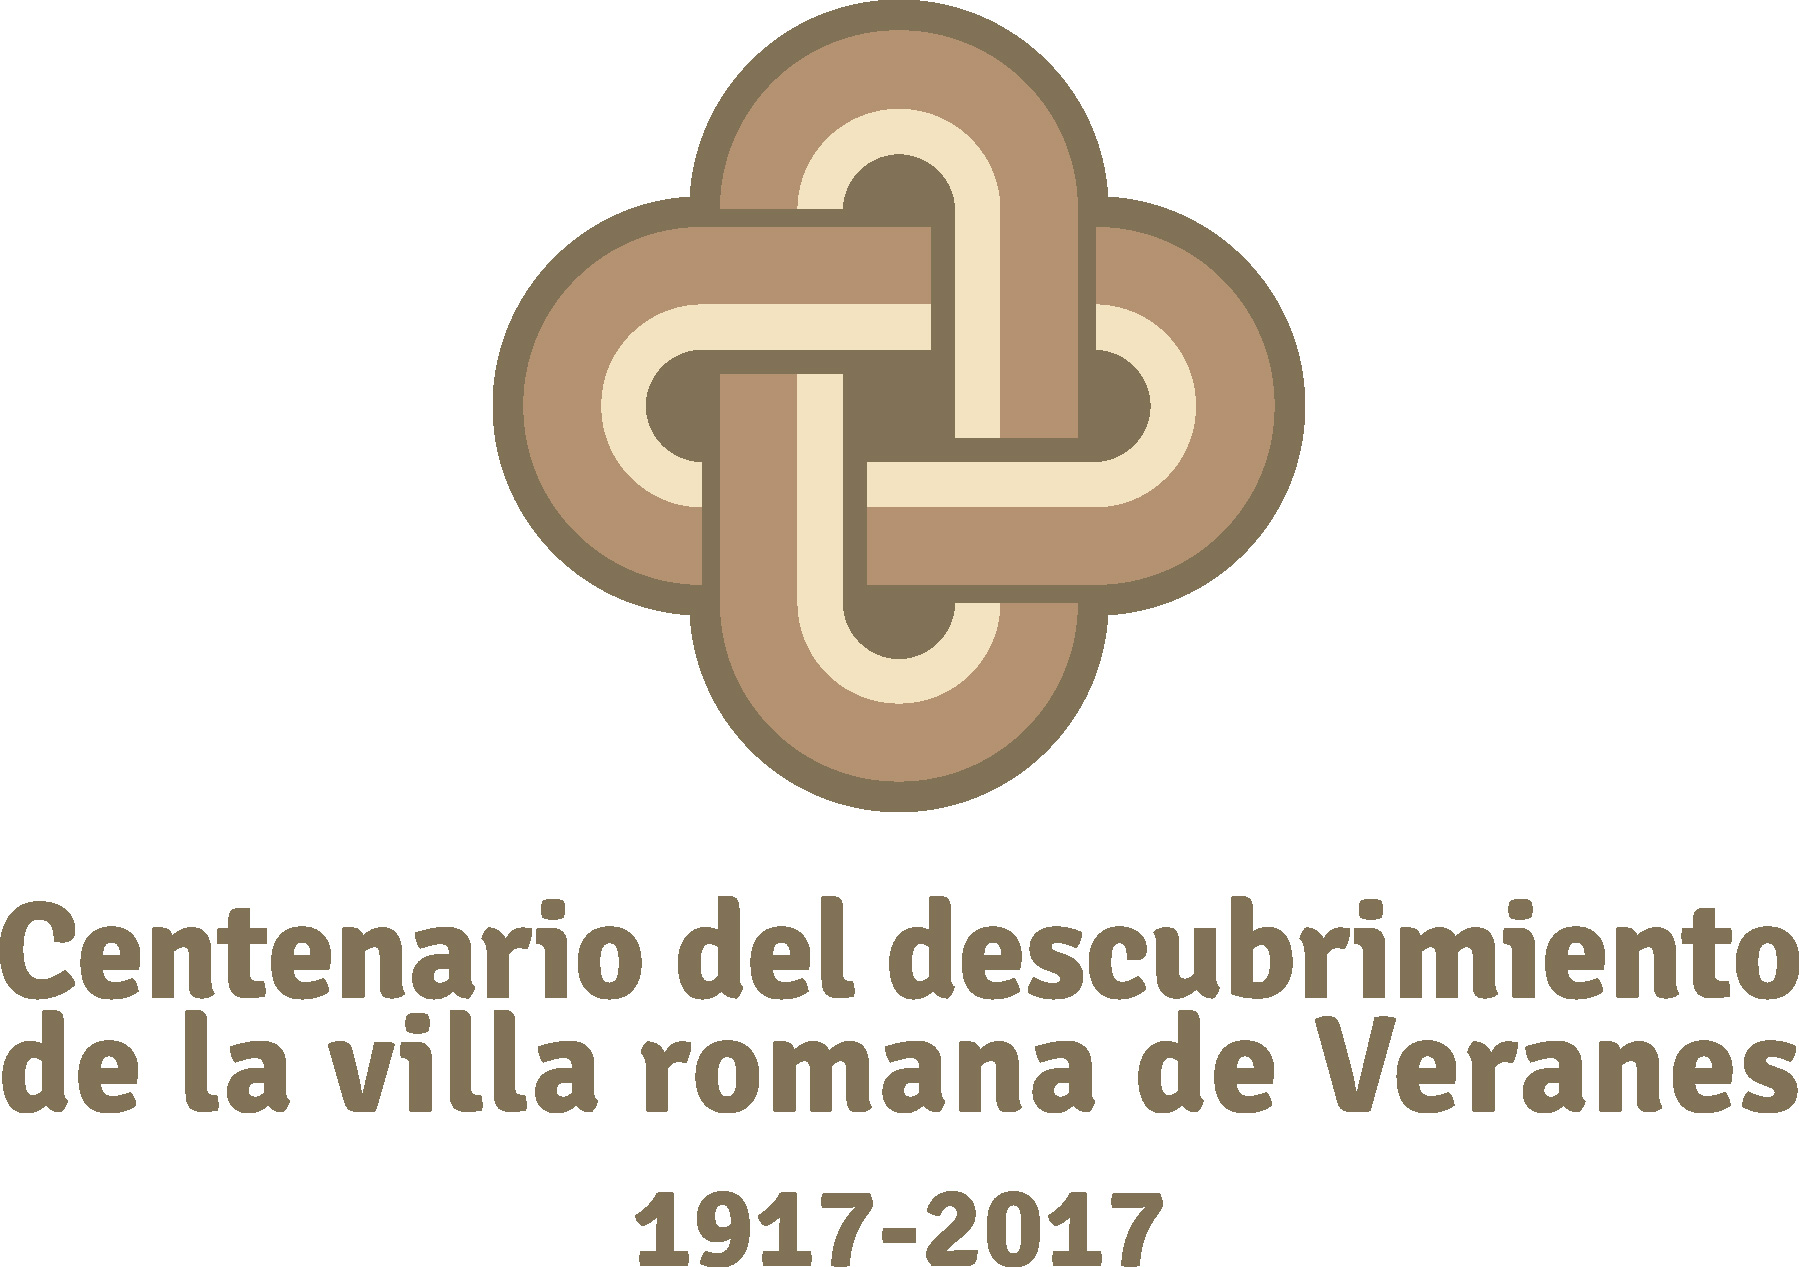 Customized logotype to commemorate the event of the roman ruins of Veranes